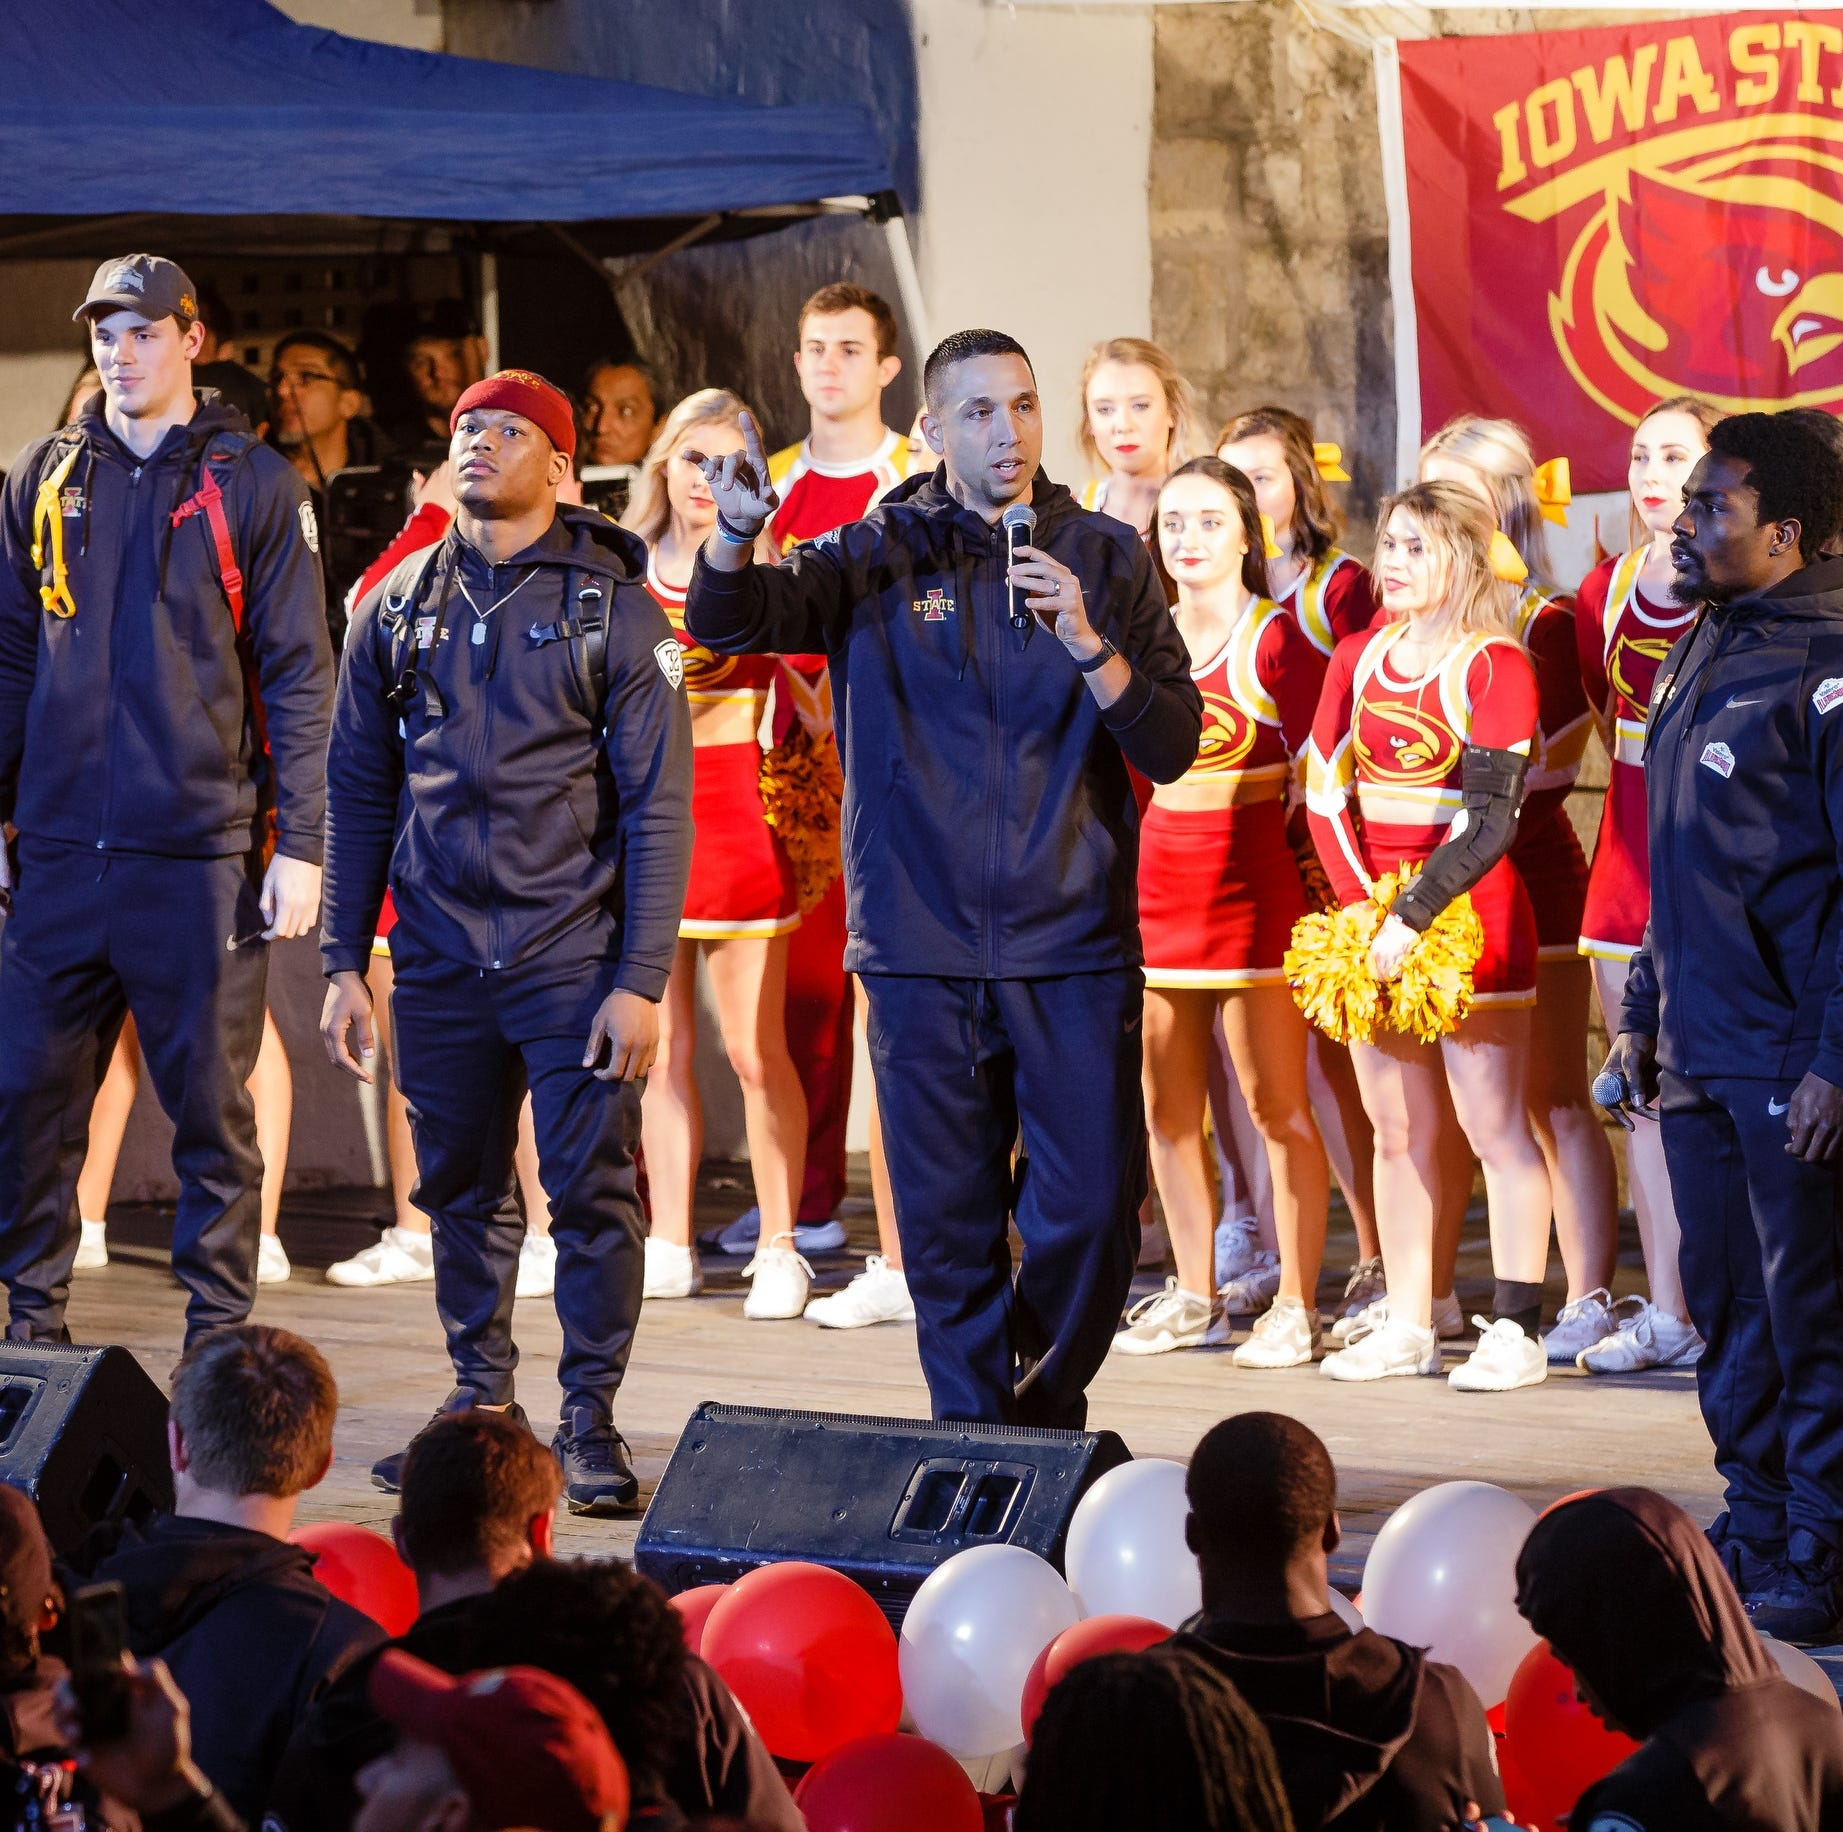 Iowa State coaches' bowl and basketball postseason bonus windfall is more than $300,000